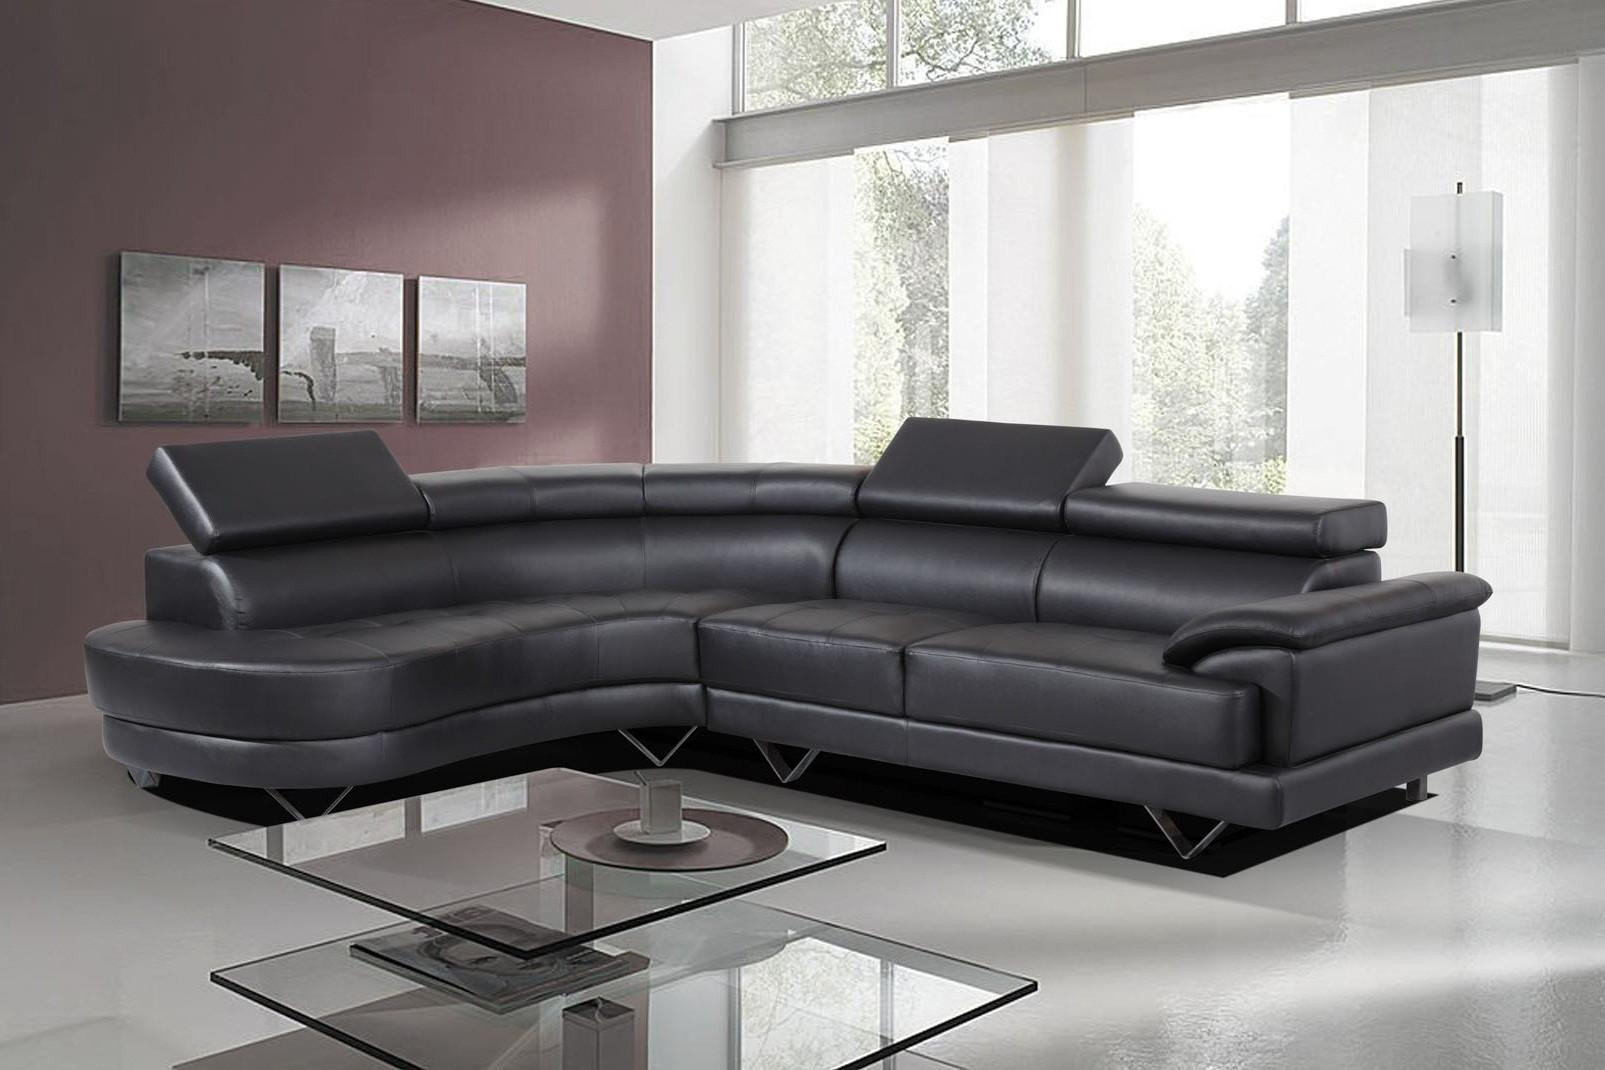 Leather Corner Sofa Second Hand | Tehranmix Decoration Intended For Black Leather Corner Sofas (View 5 of 20)